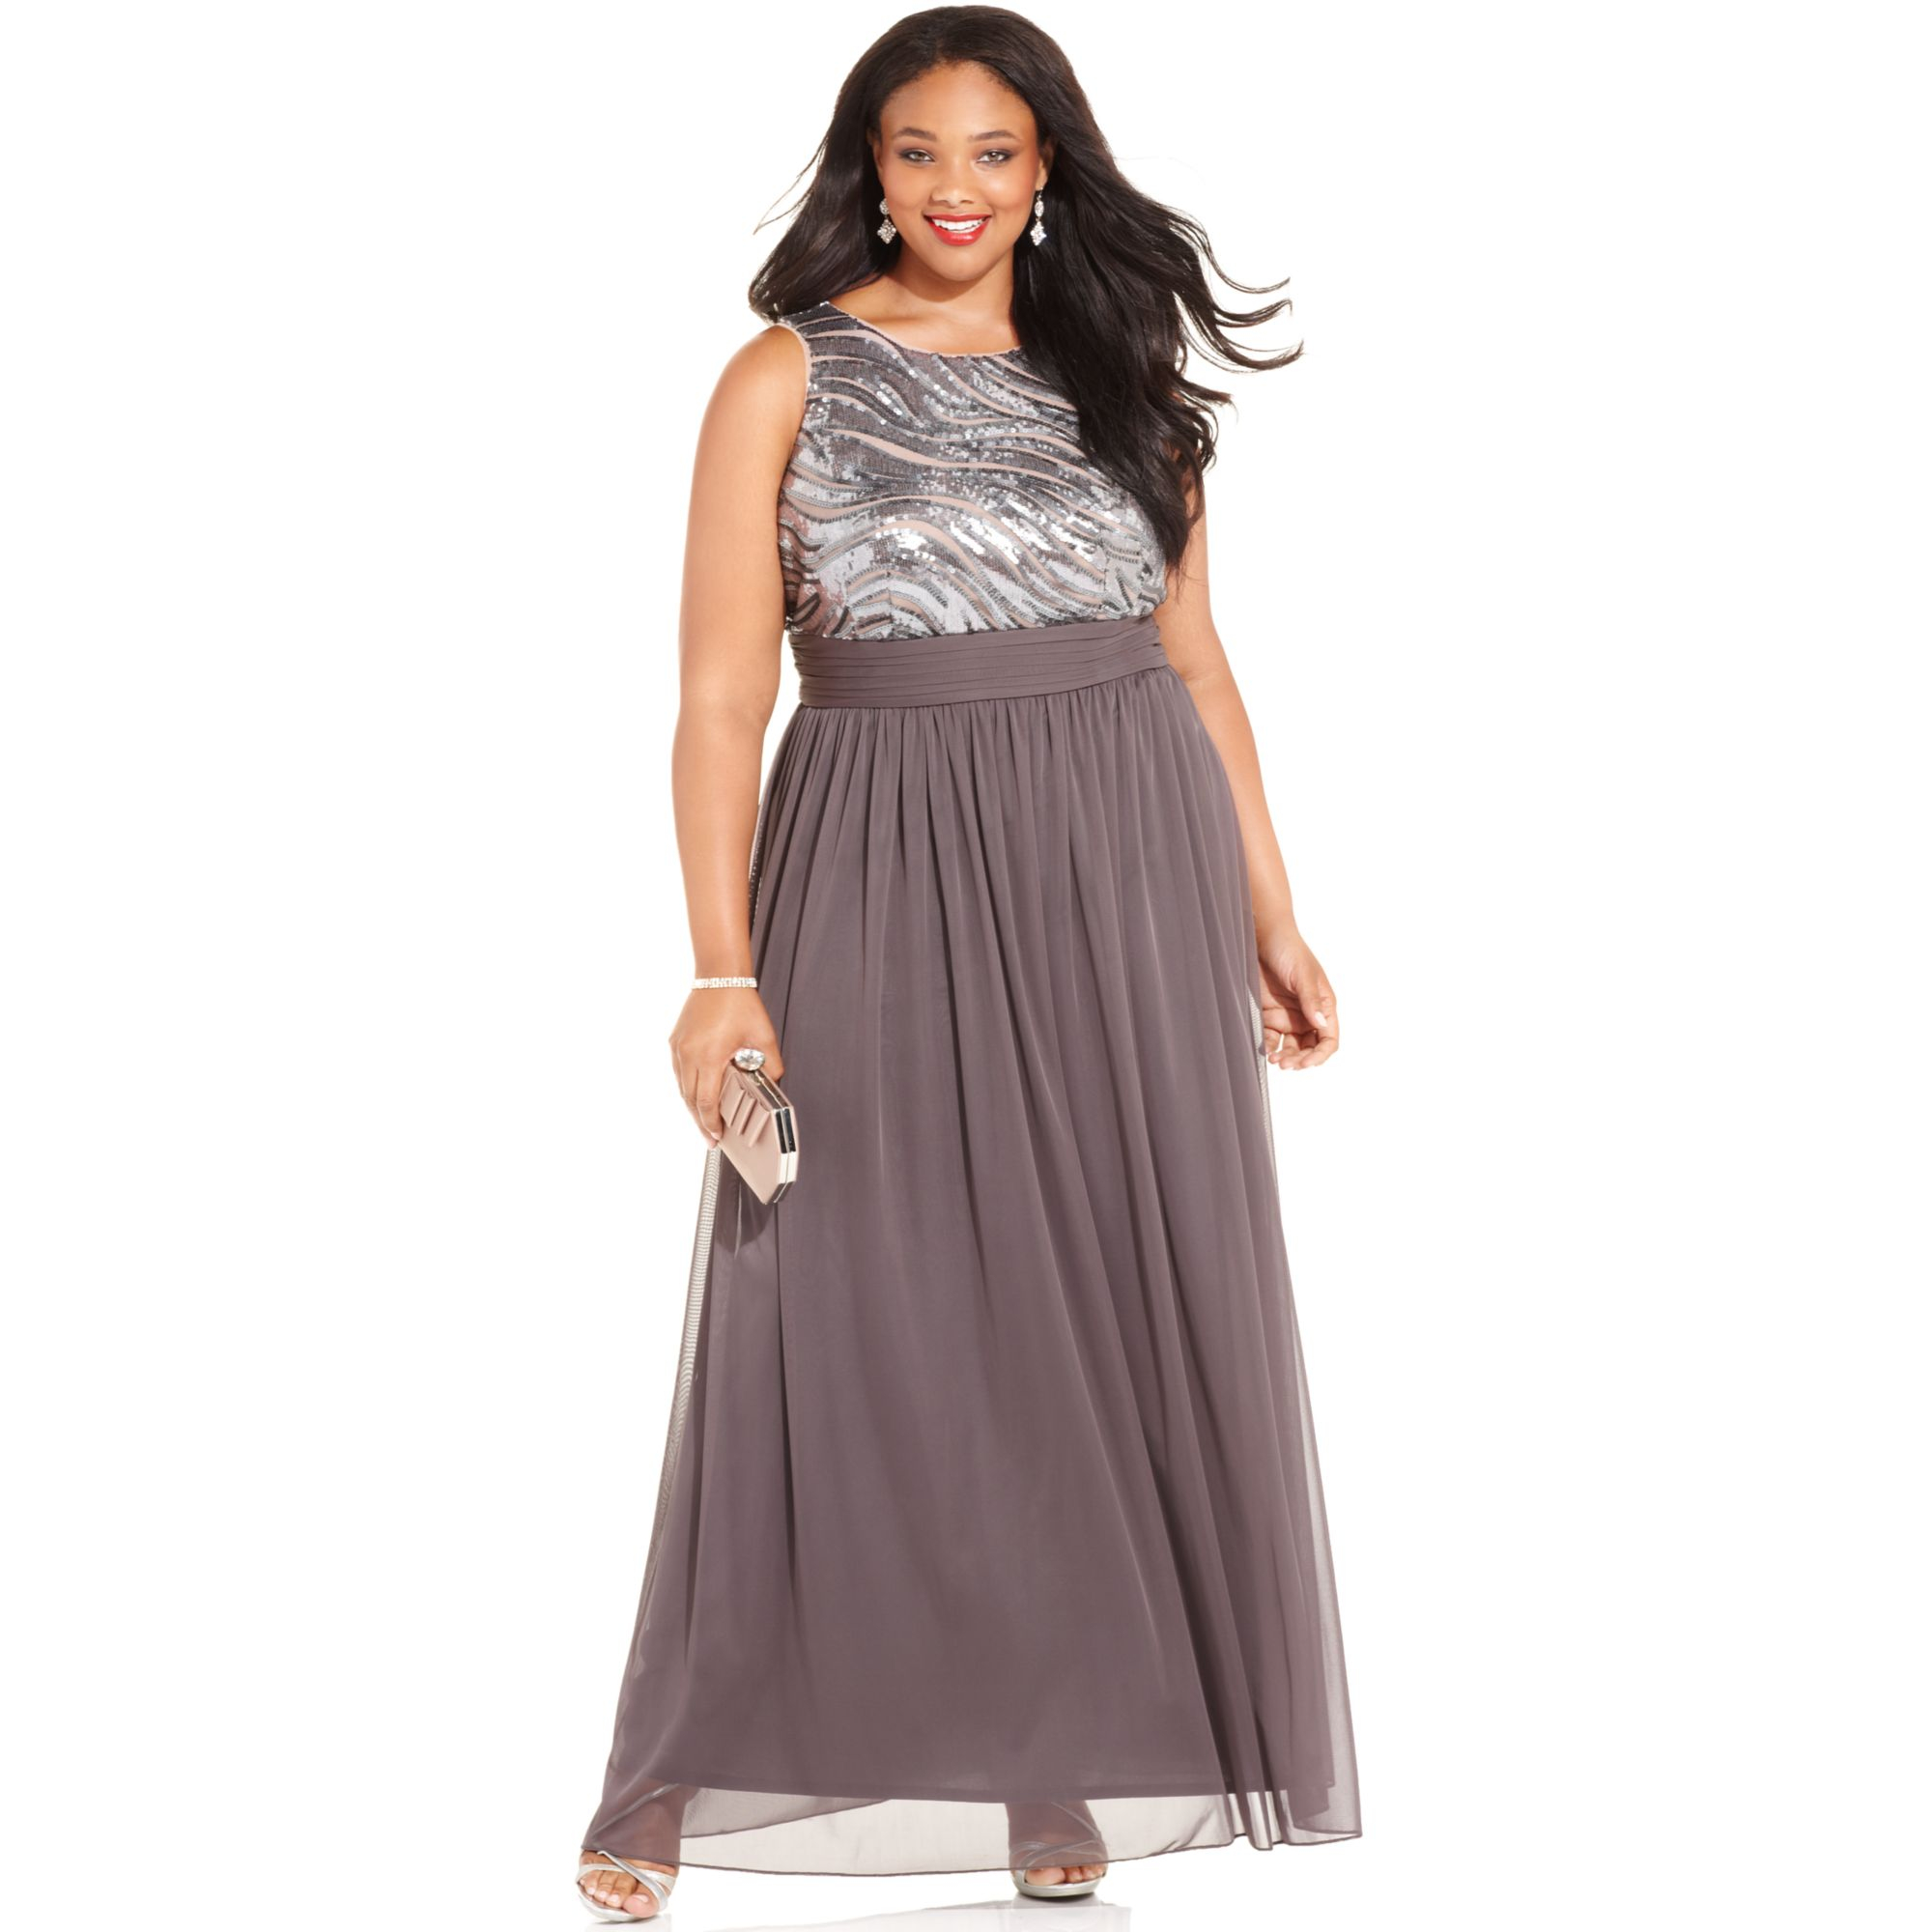 Lyst - Betsy & Adam Plus Size Sequin Chiffon Gown in Gray